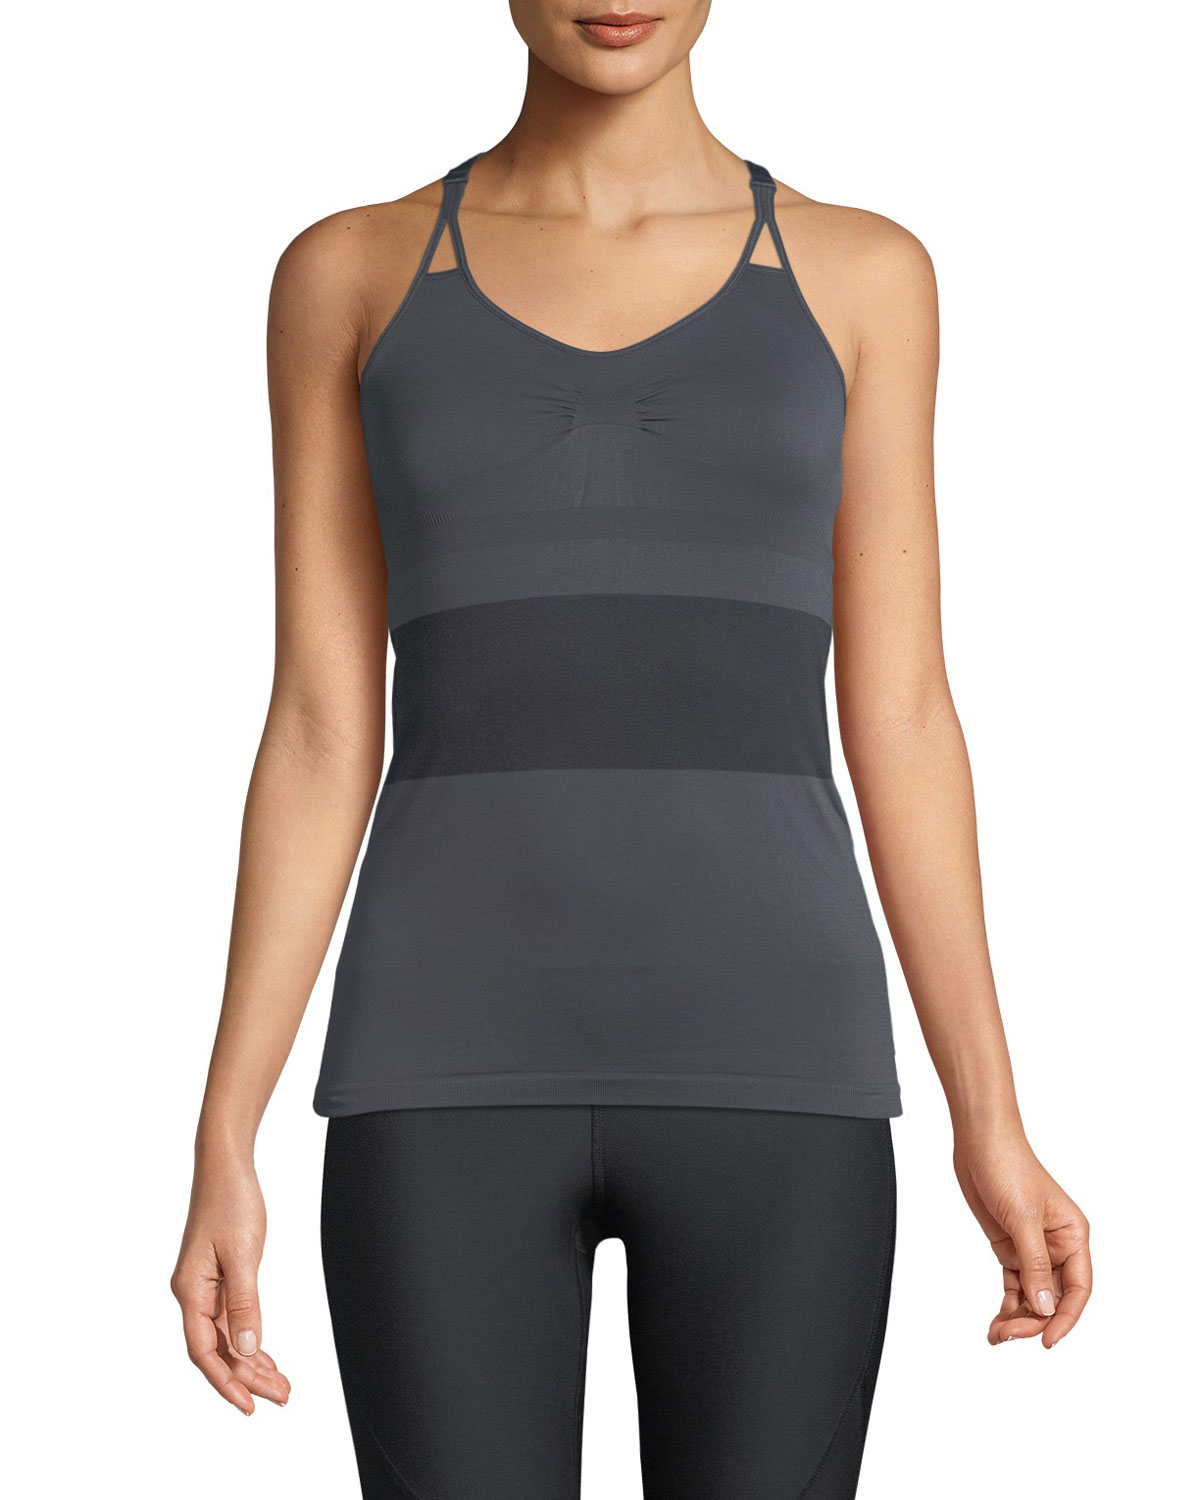 8383b3c3e9073 adidas by Stella McCartney Seamless Training Tank